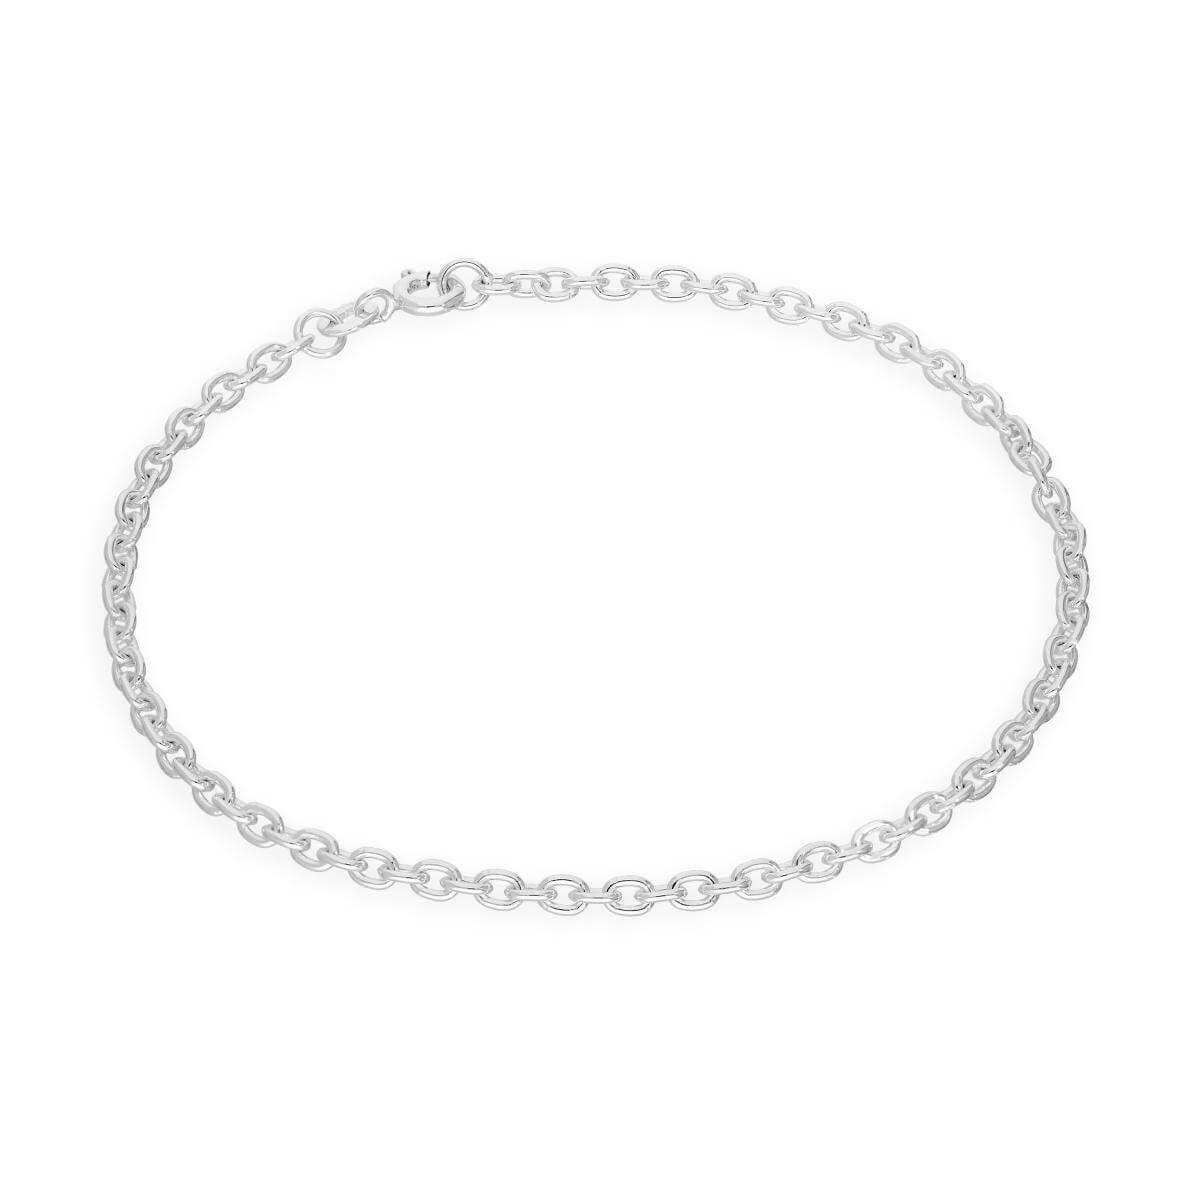 Sterling Silver 3mm Curb Cable Bracelet 6 - 8 Inches